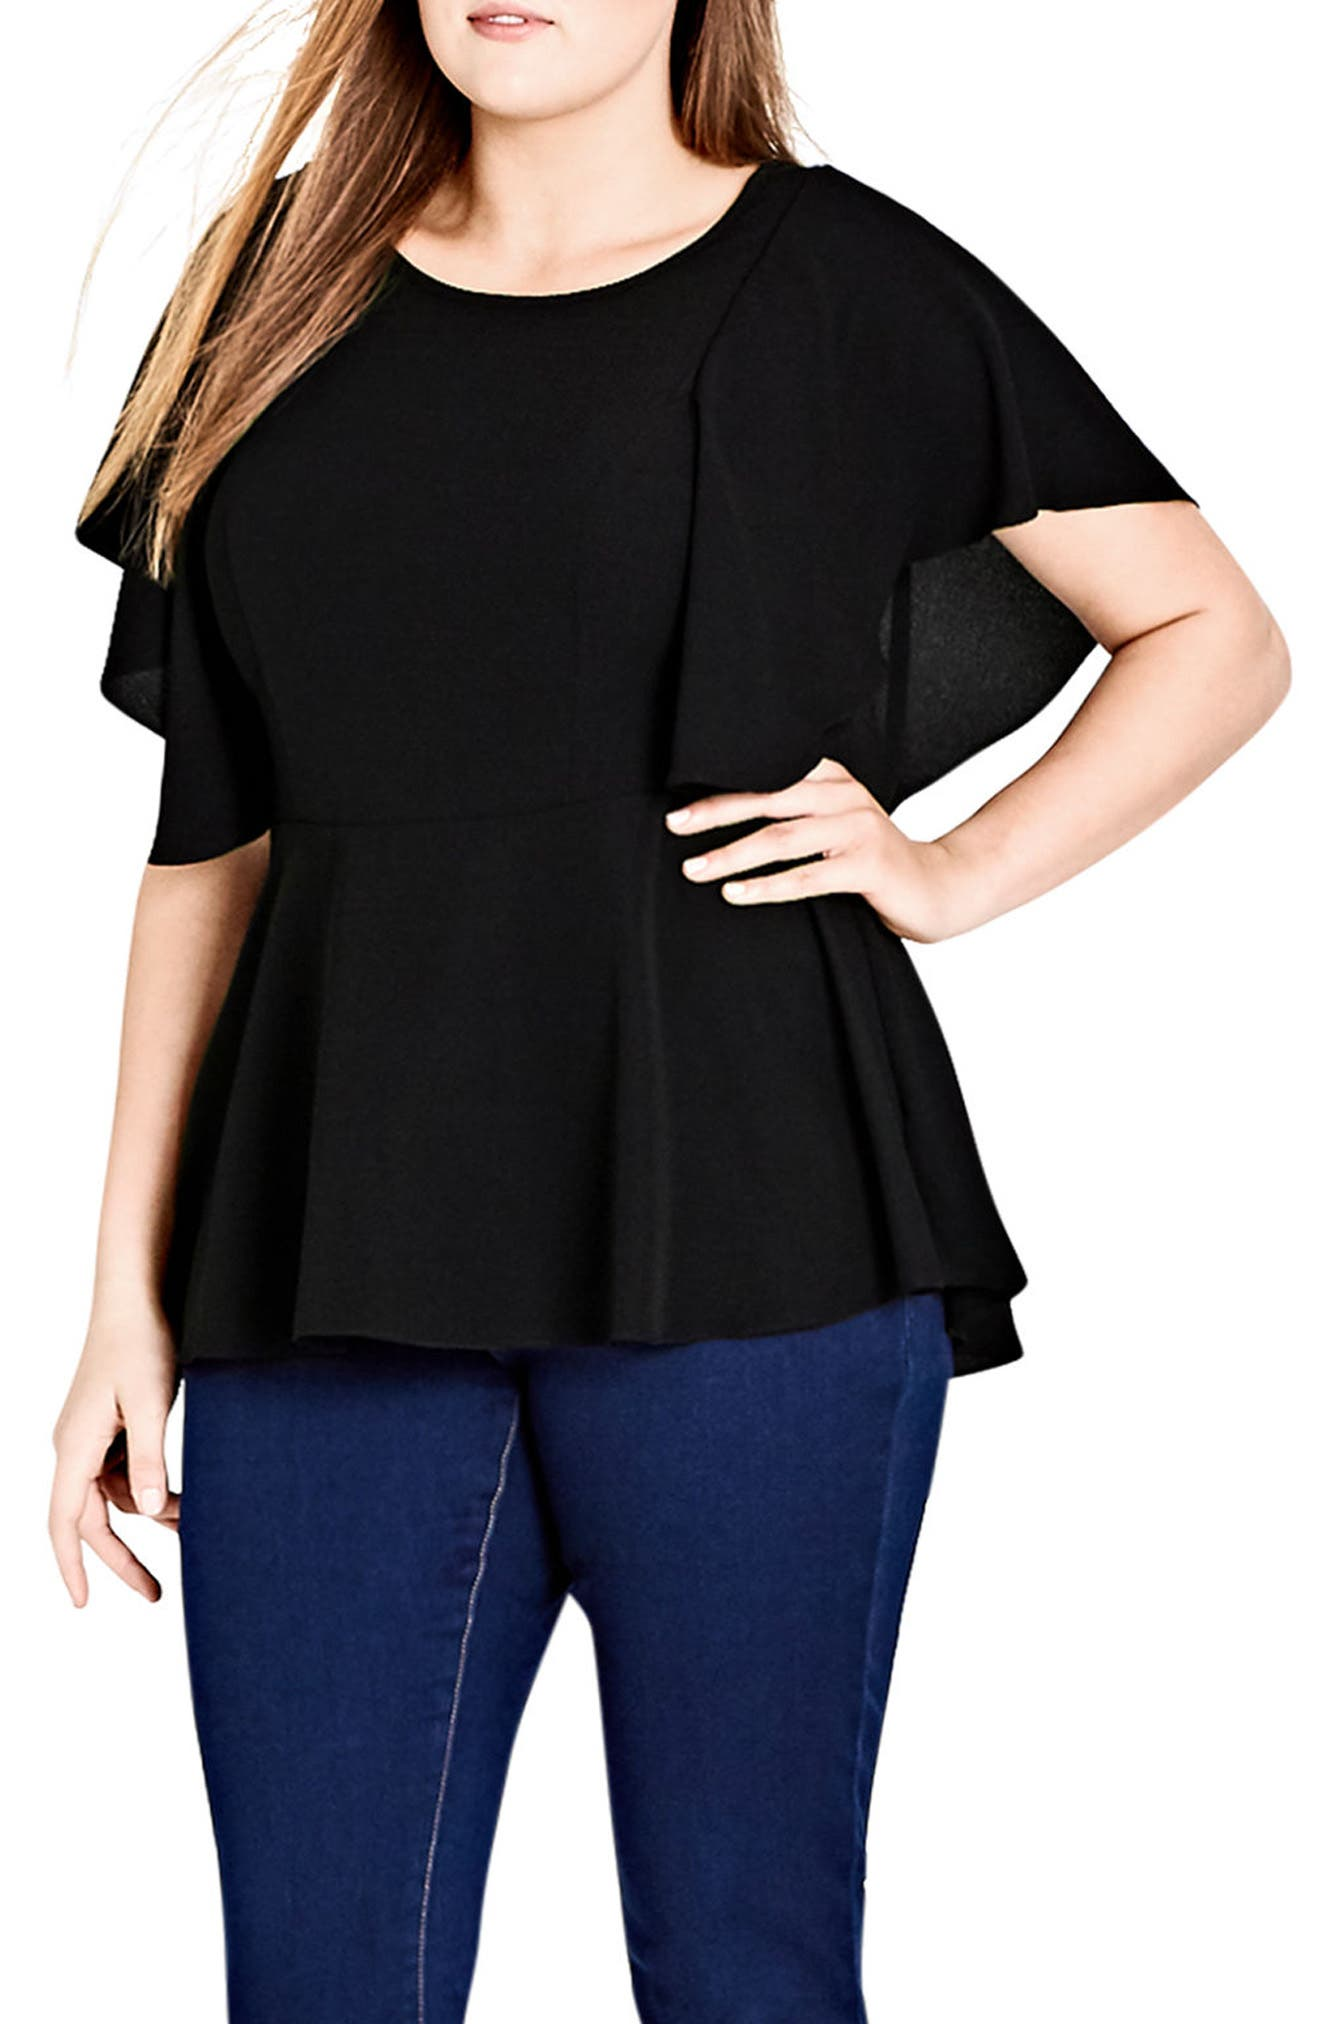 Romantic Mood Top,                             Main thumbnail 1, color,                             Black